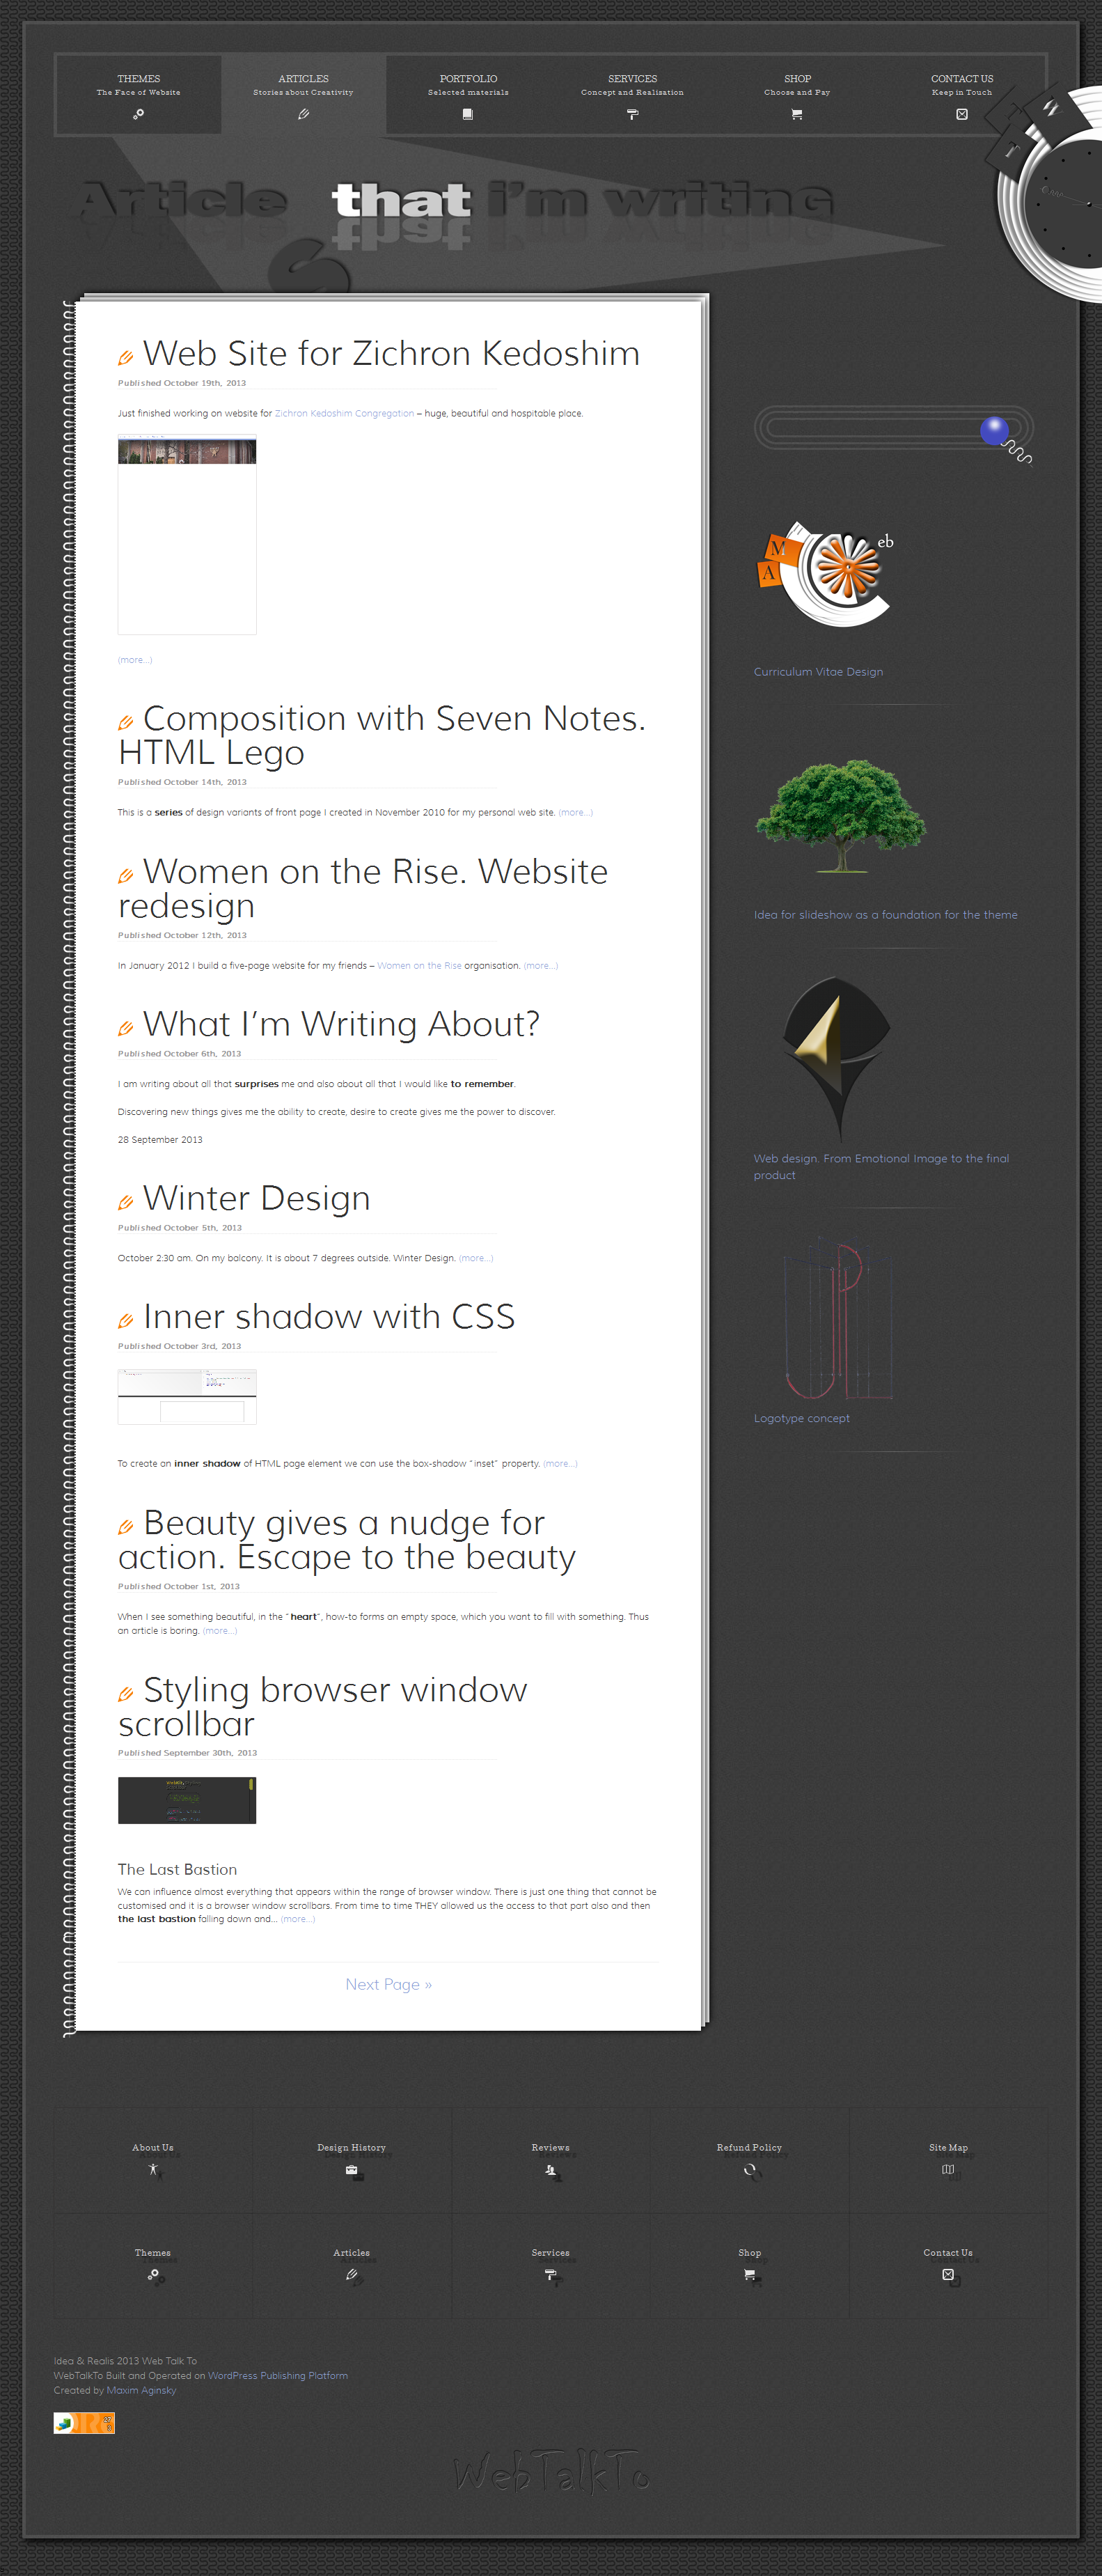 6 Articles page design